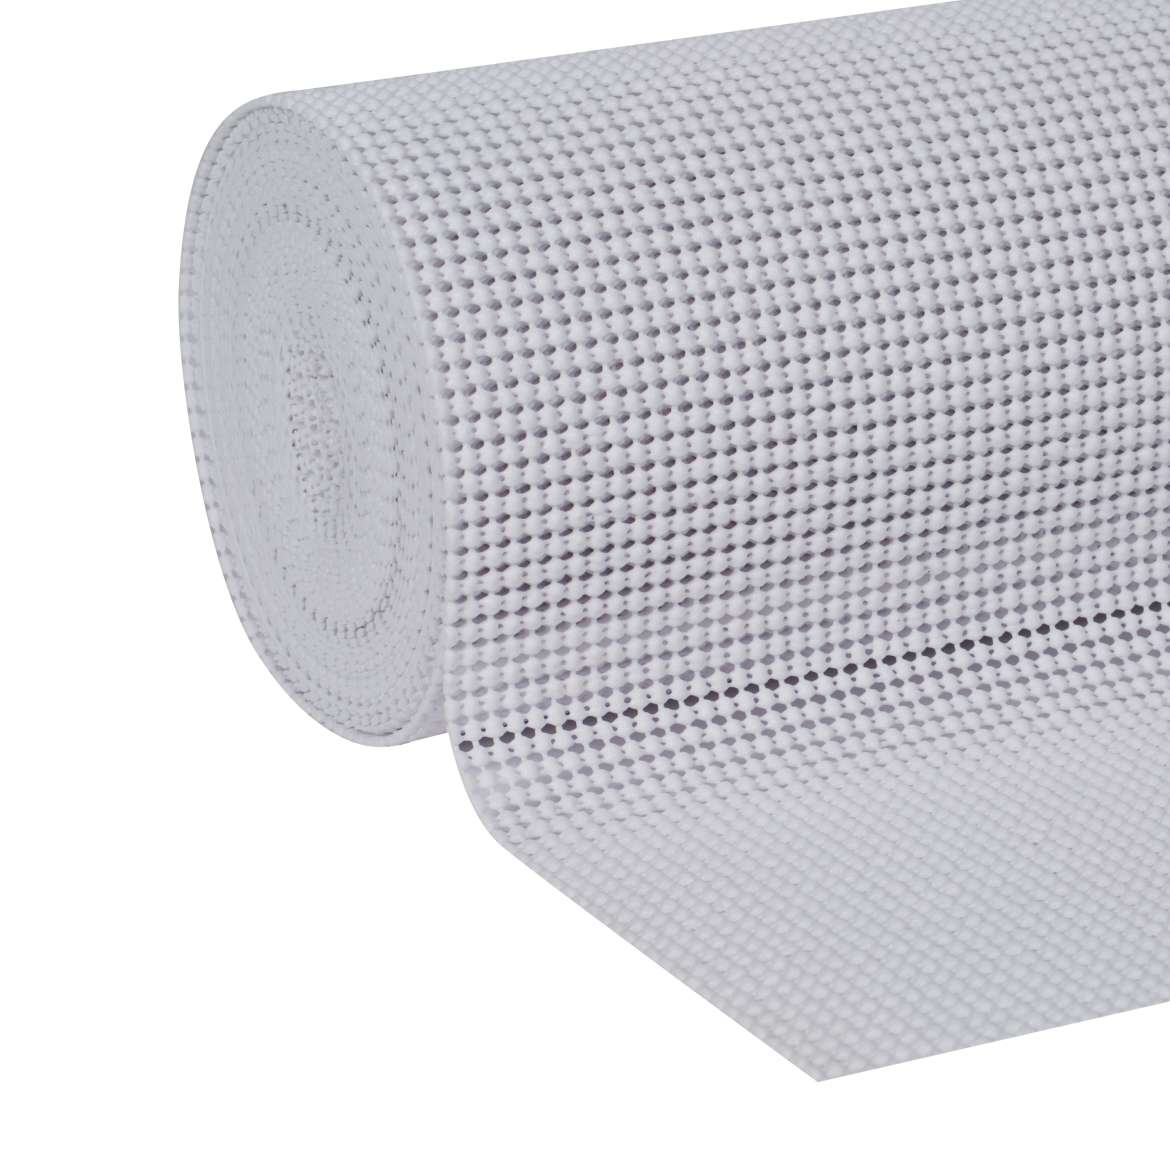 Duck Brand Select Grip Easy Liner Brand Shelf Liner - White, 20 in. x 24 ft.